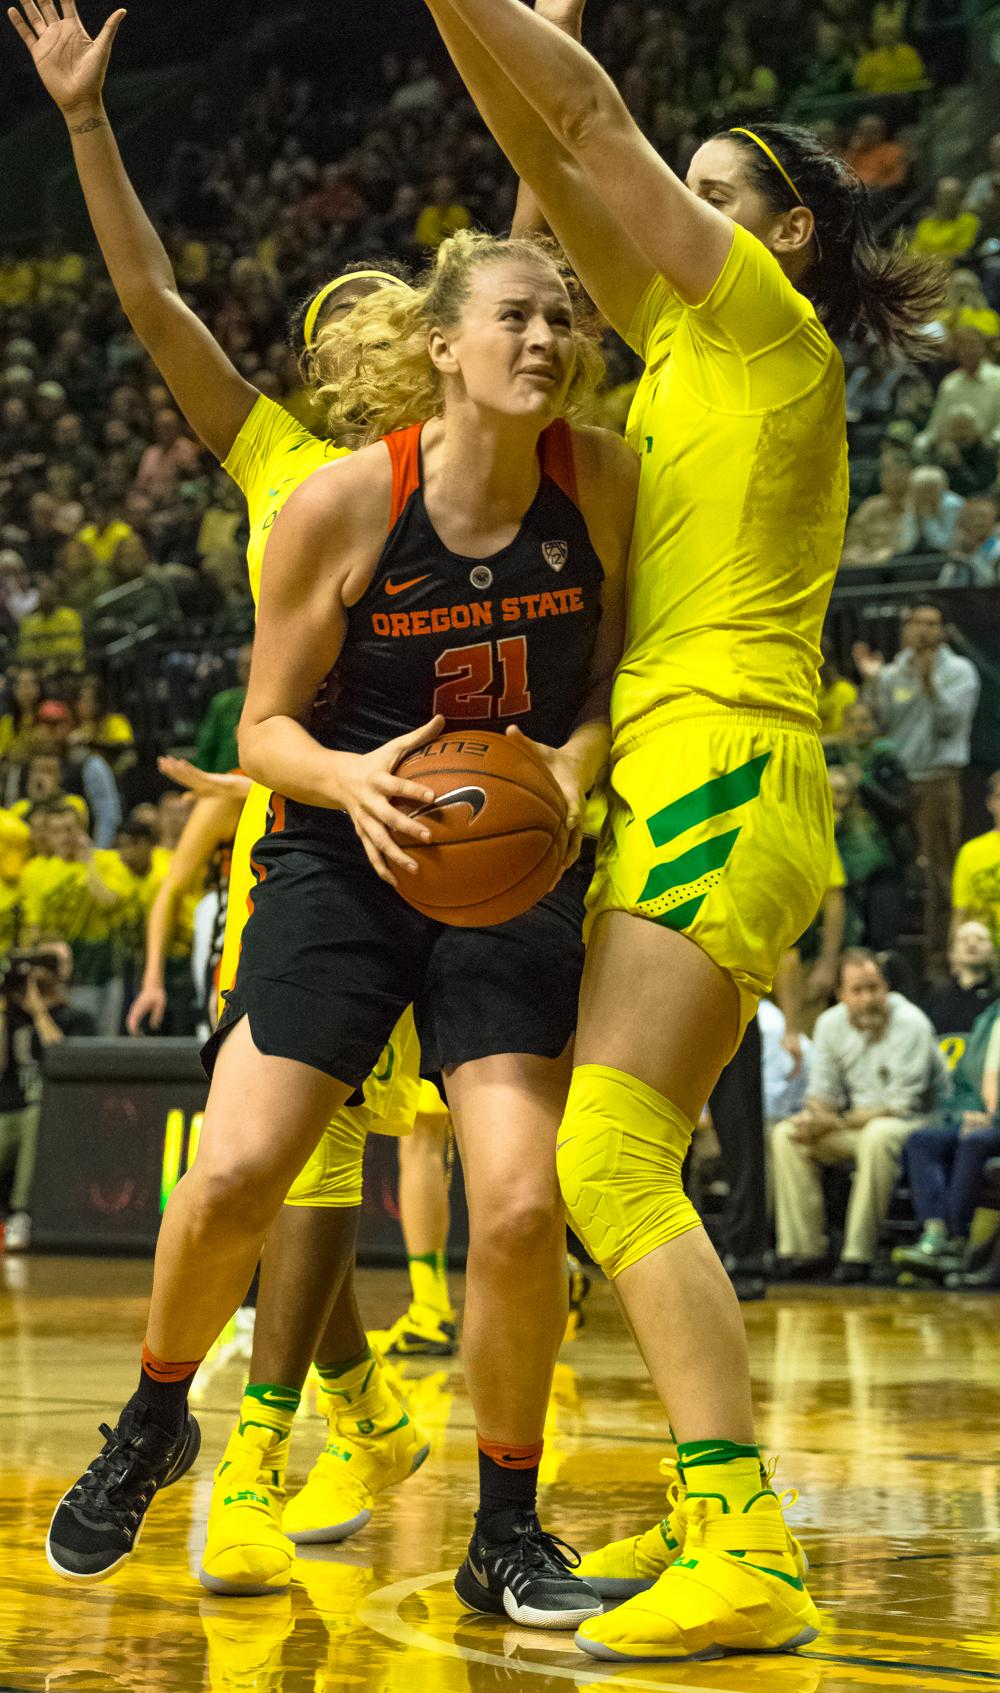 Oregon Ducks Forward Jacinta Vadenberg (#15) protects the basket against Center Marie Gulich (#21) as she attempts a layup. Oregon Ducks lost 40-43 to Oregon State Beavers in a tightly matched fourth quarter. Photo by Jonathan Booker, Oregon News Lab